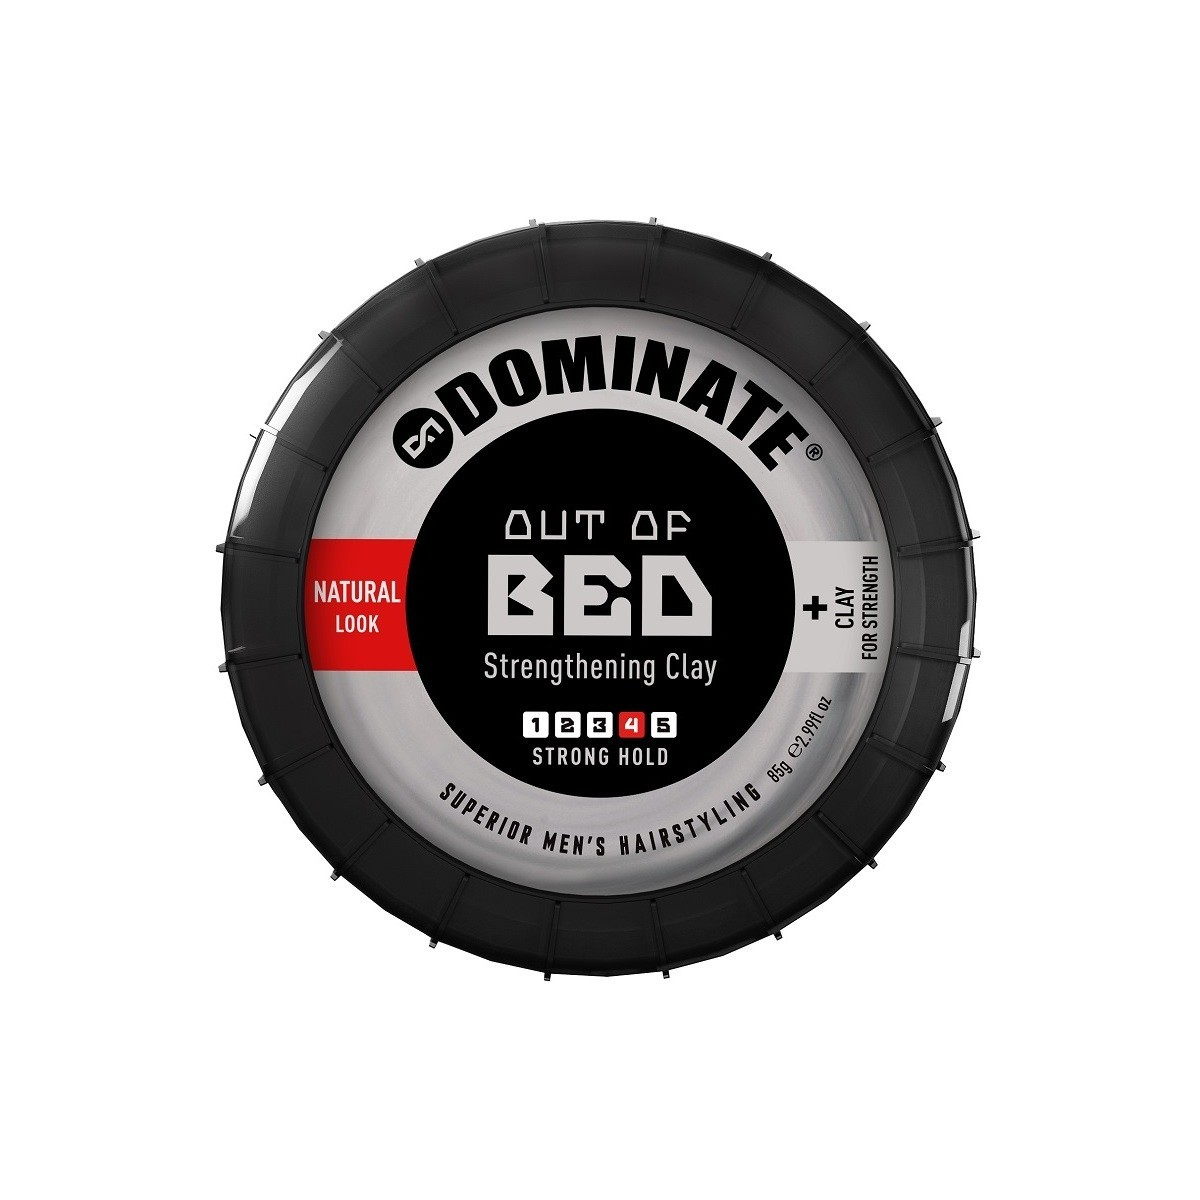 Big W Bed Dominate Out Of Bed Hair Clay 85 G Big W